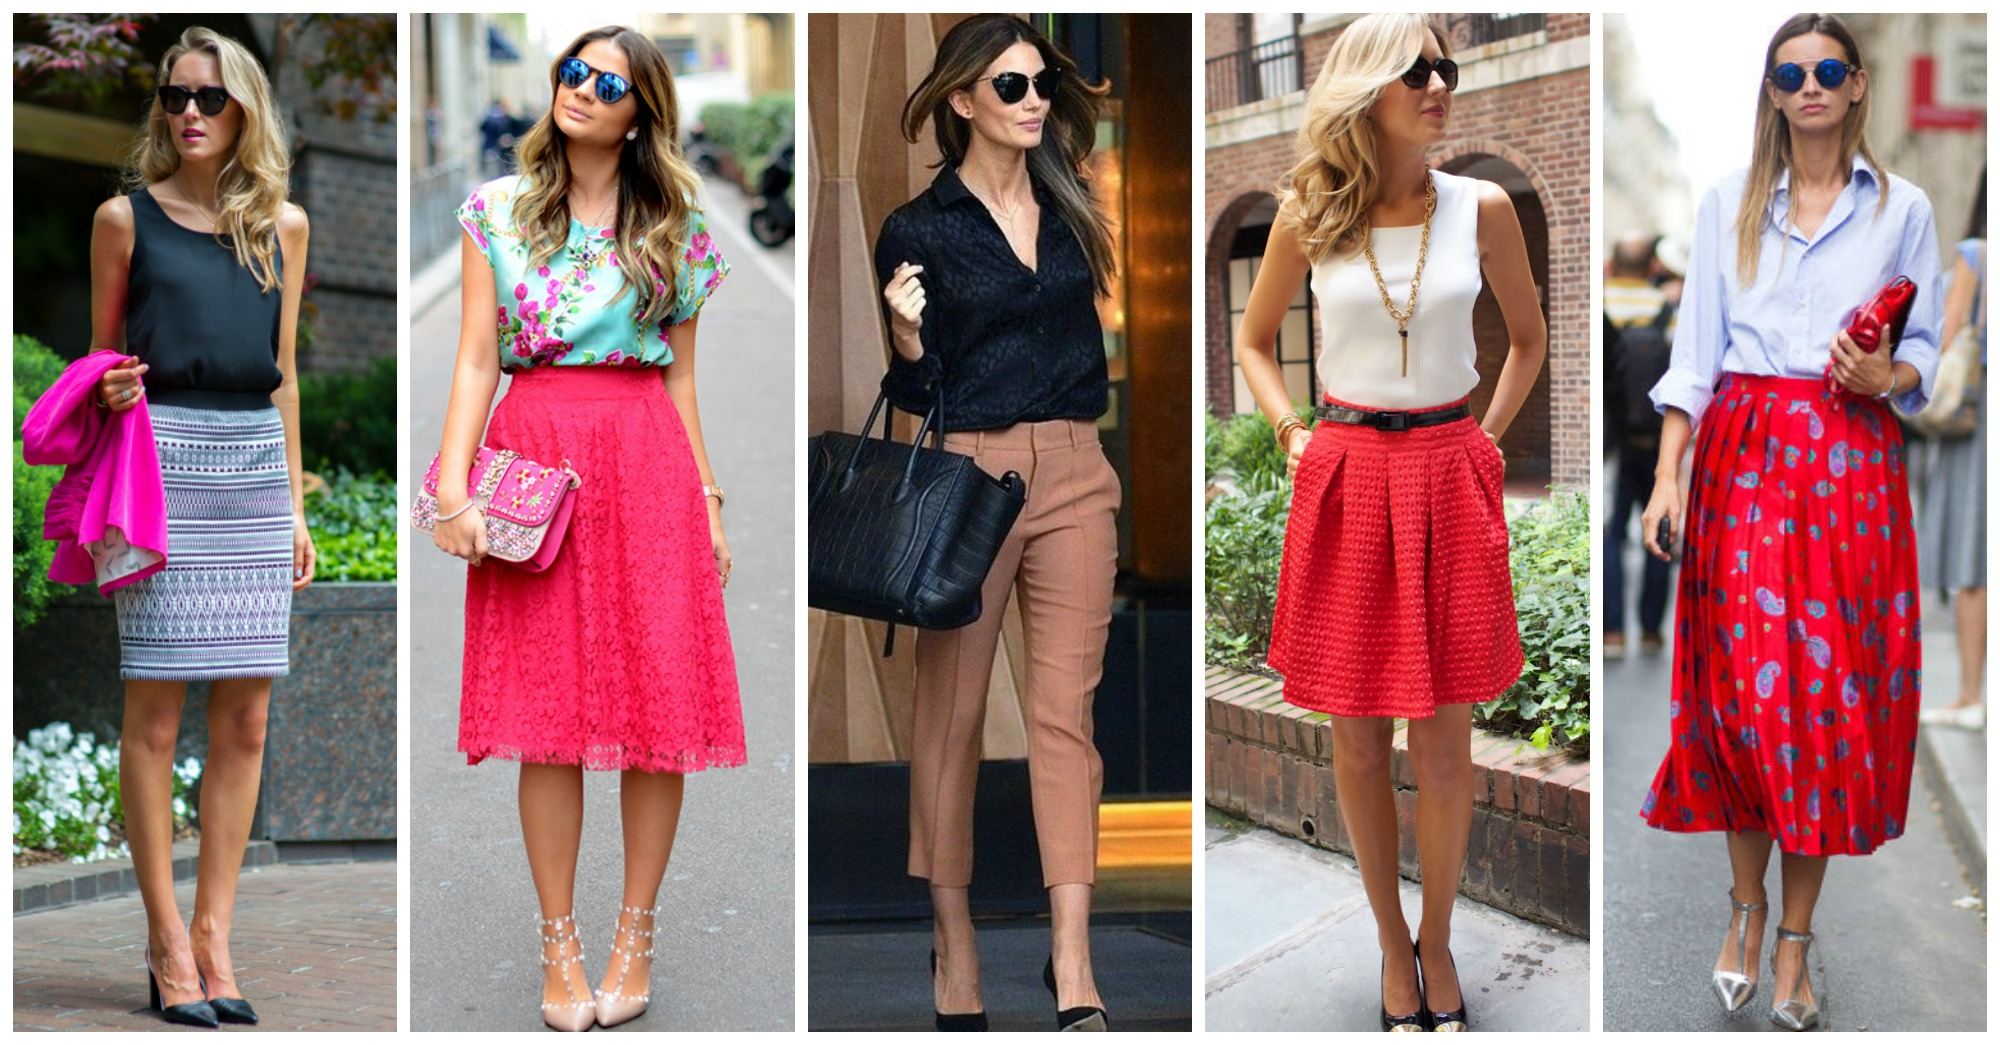 10 Classy Office Outfits to Wear This Summer